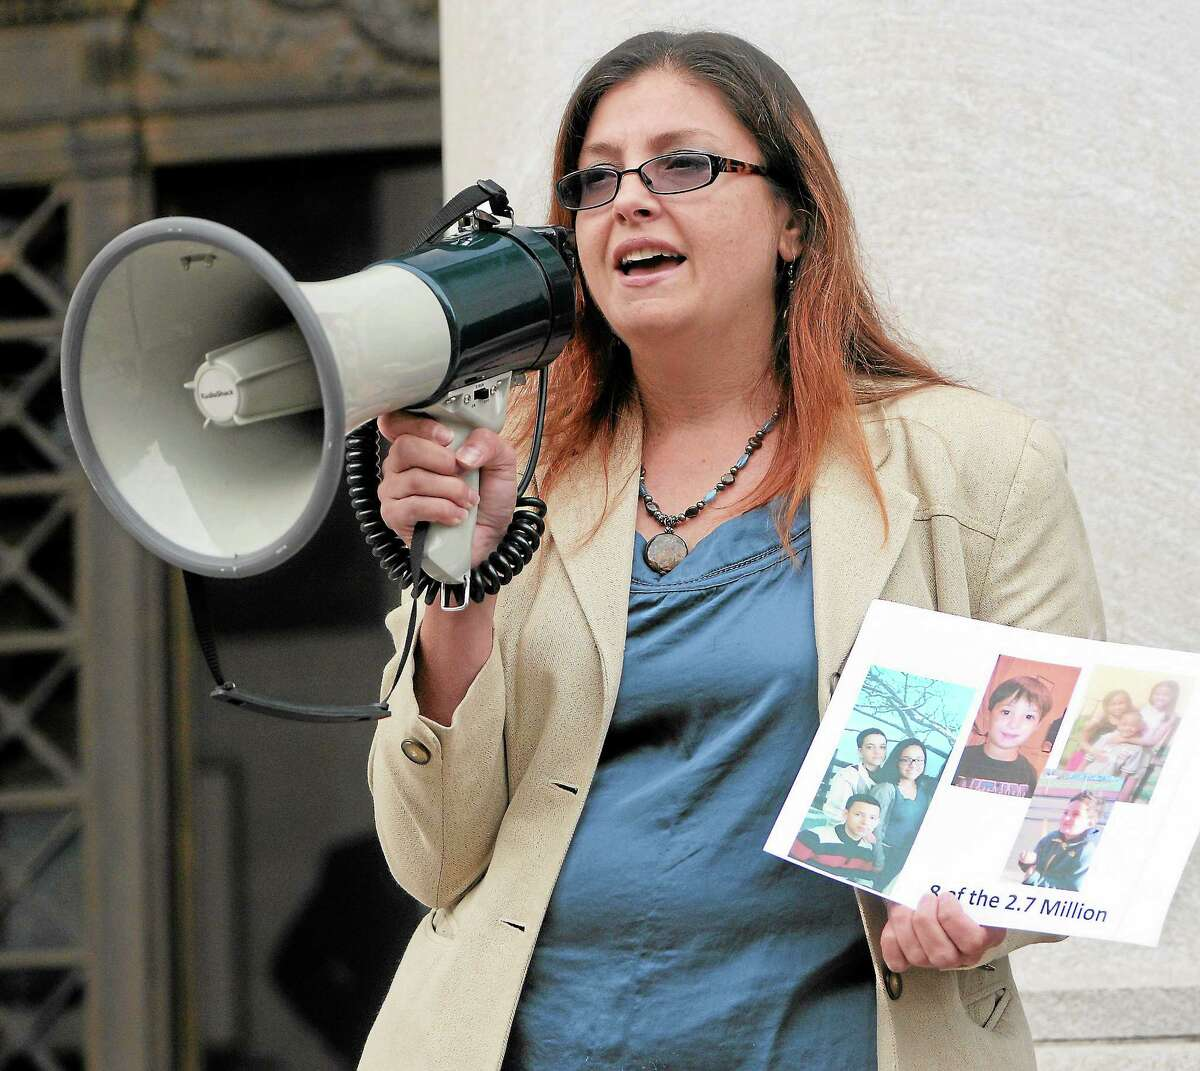 (Peter Hvizdak — Register)Tamara L. Petro, Executive Director of The Multicultural Leadership Institute Inc. in North Haven speaks during a protest Tuesday October 15, 2013 at the Federal Courthouse in New Haven against the transfer of women prisoners from the Danbury Federal Correctional Institute.